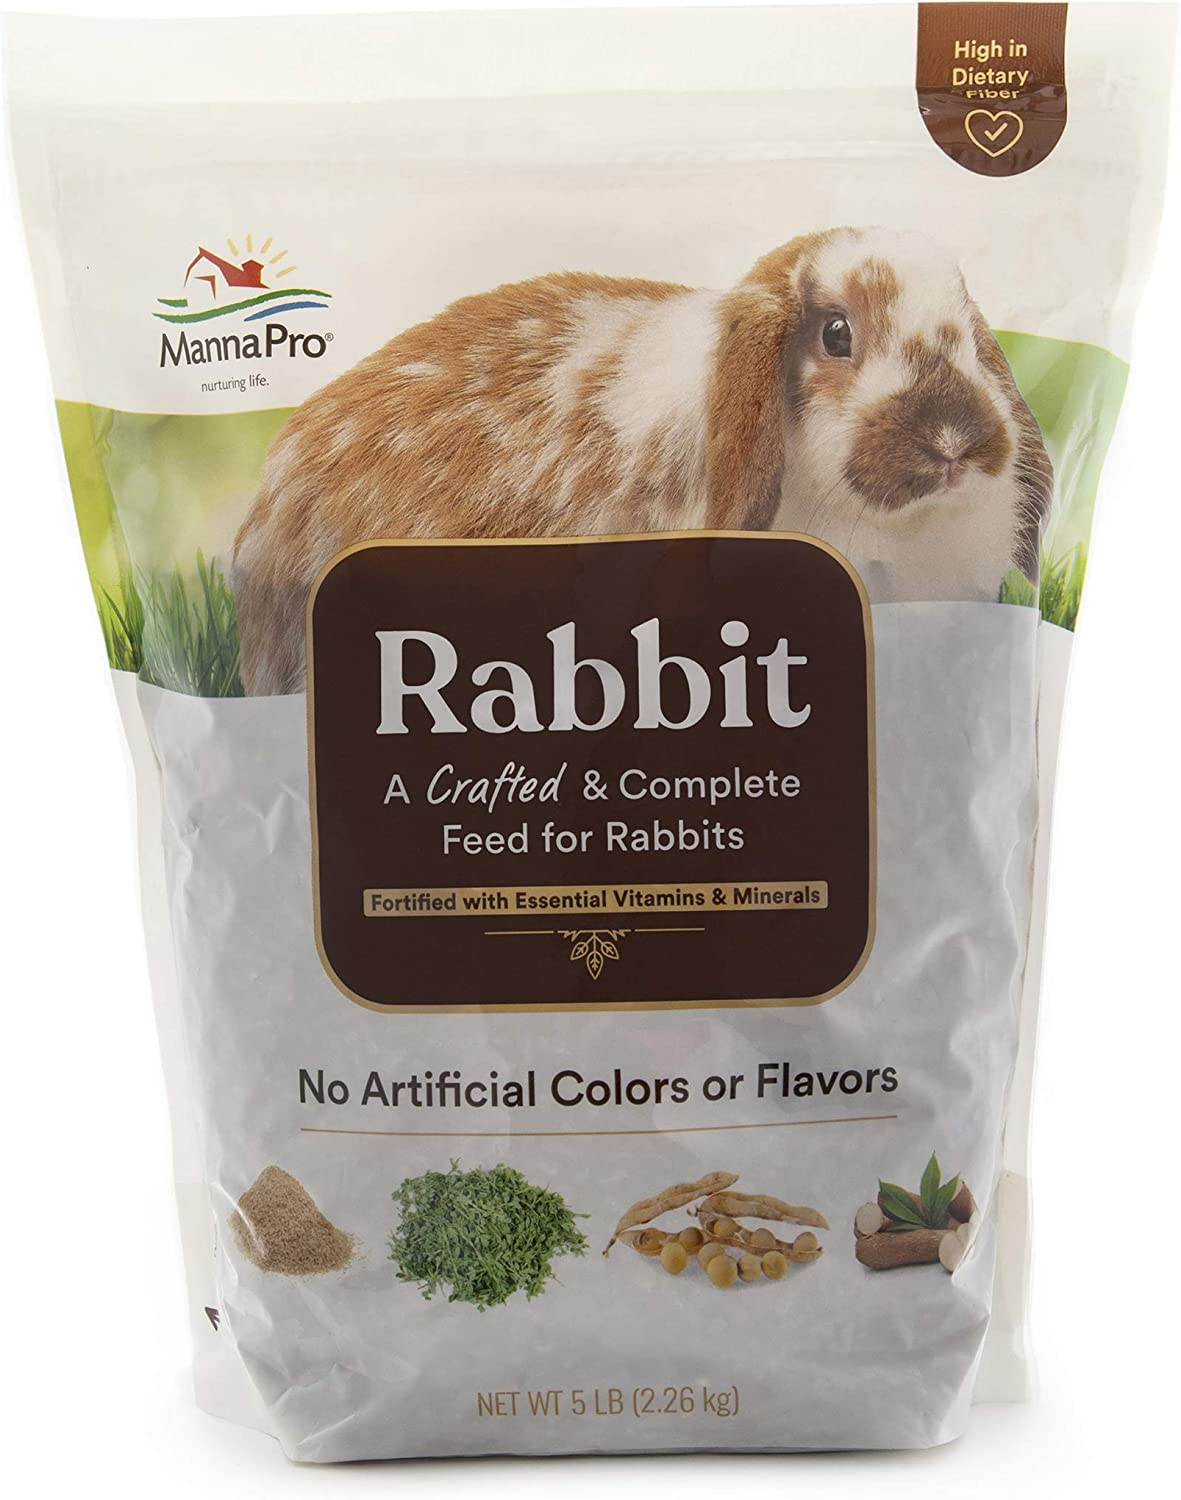 Manna Pro Rabbit Feed | with Vitamins & Minerals | Complete Feed for Rabbits | No Artificial Colors or Flavors | 5lb